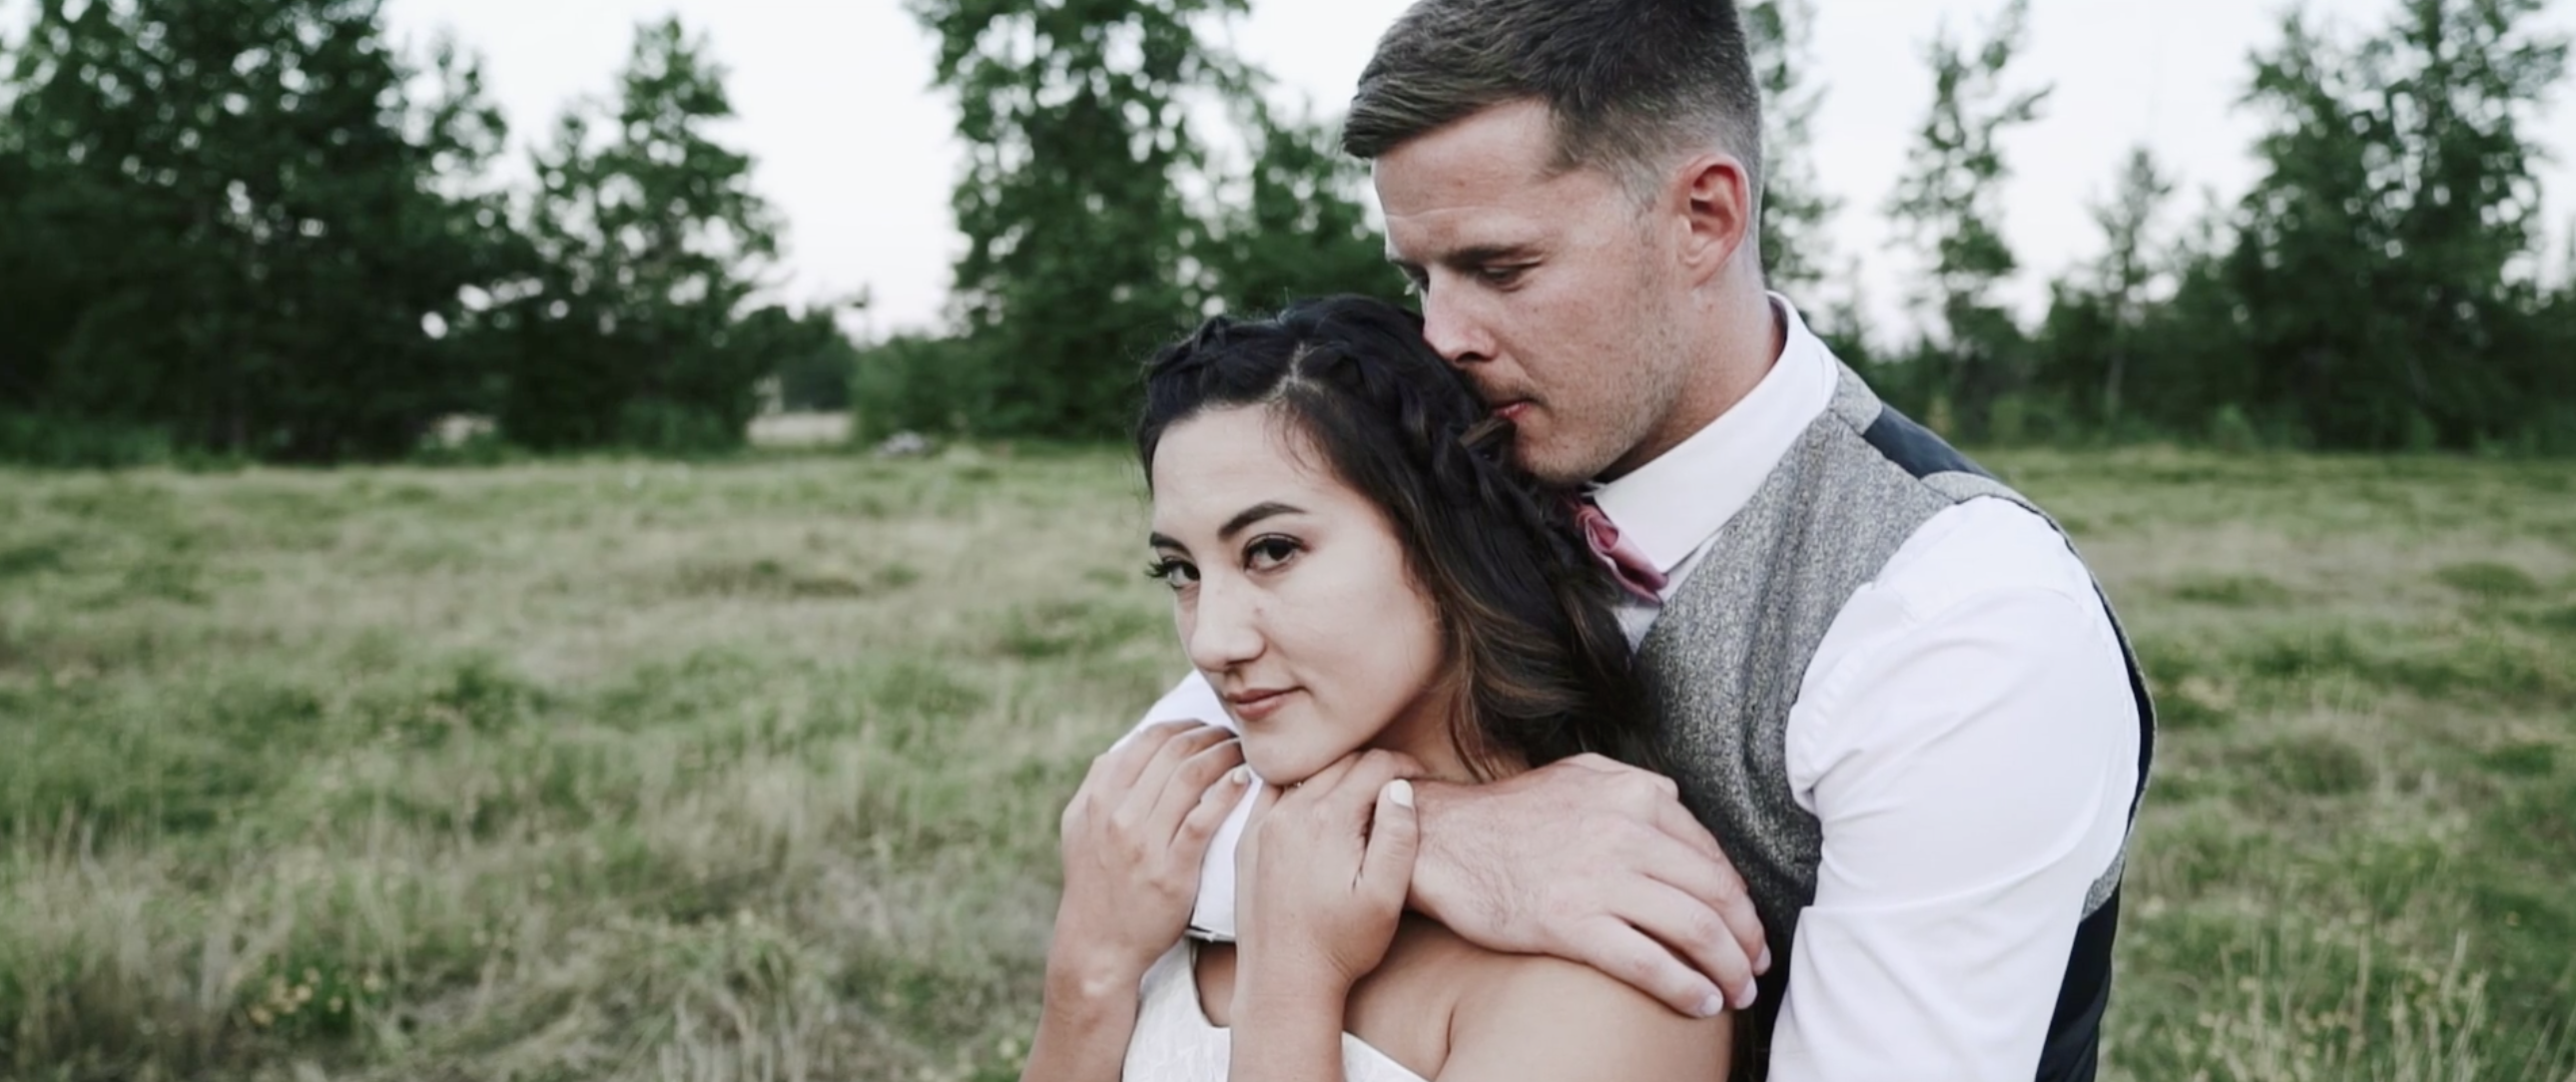 Olly + Janell | Red Lodge, Montana | Montana Wildflower Weddings